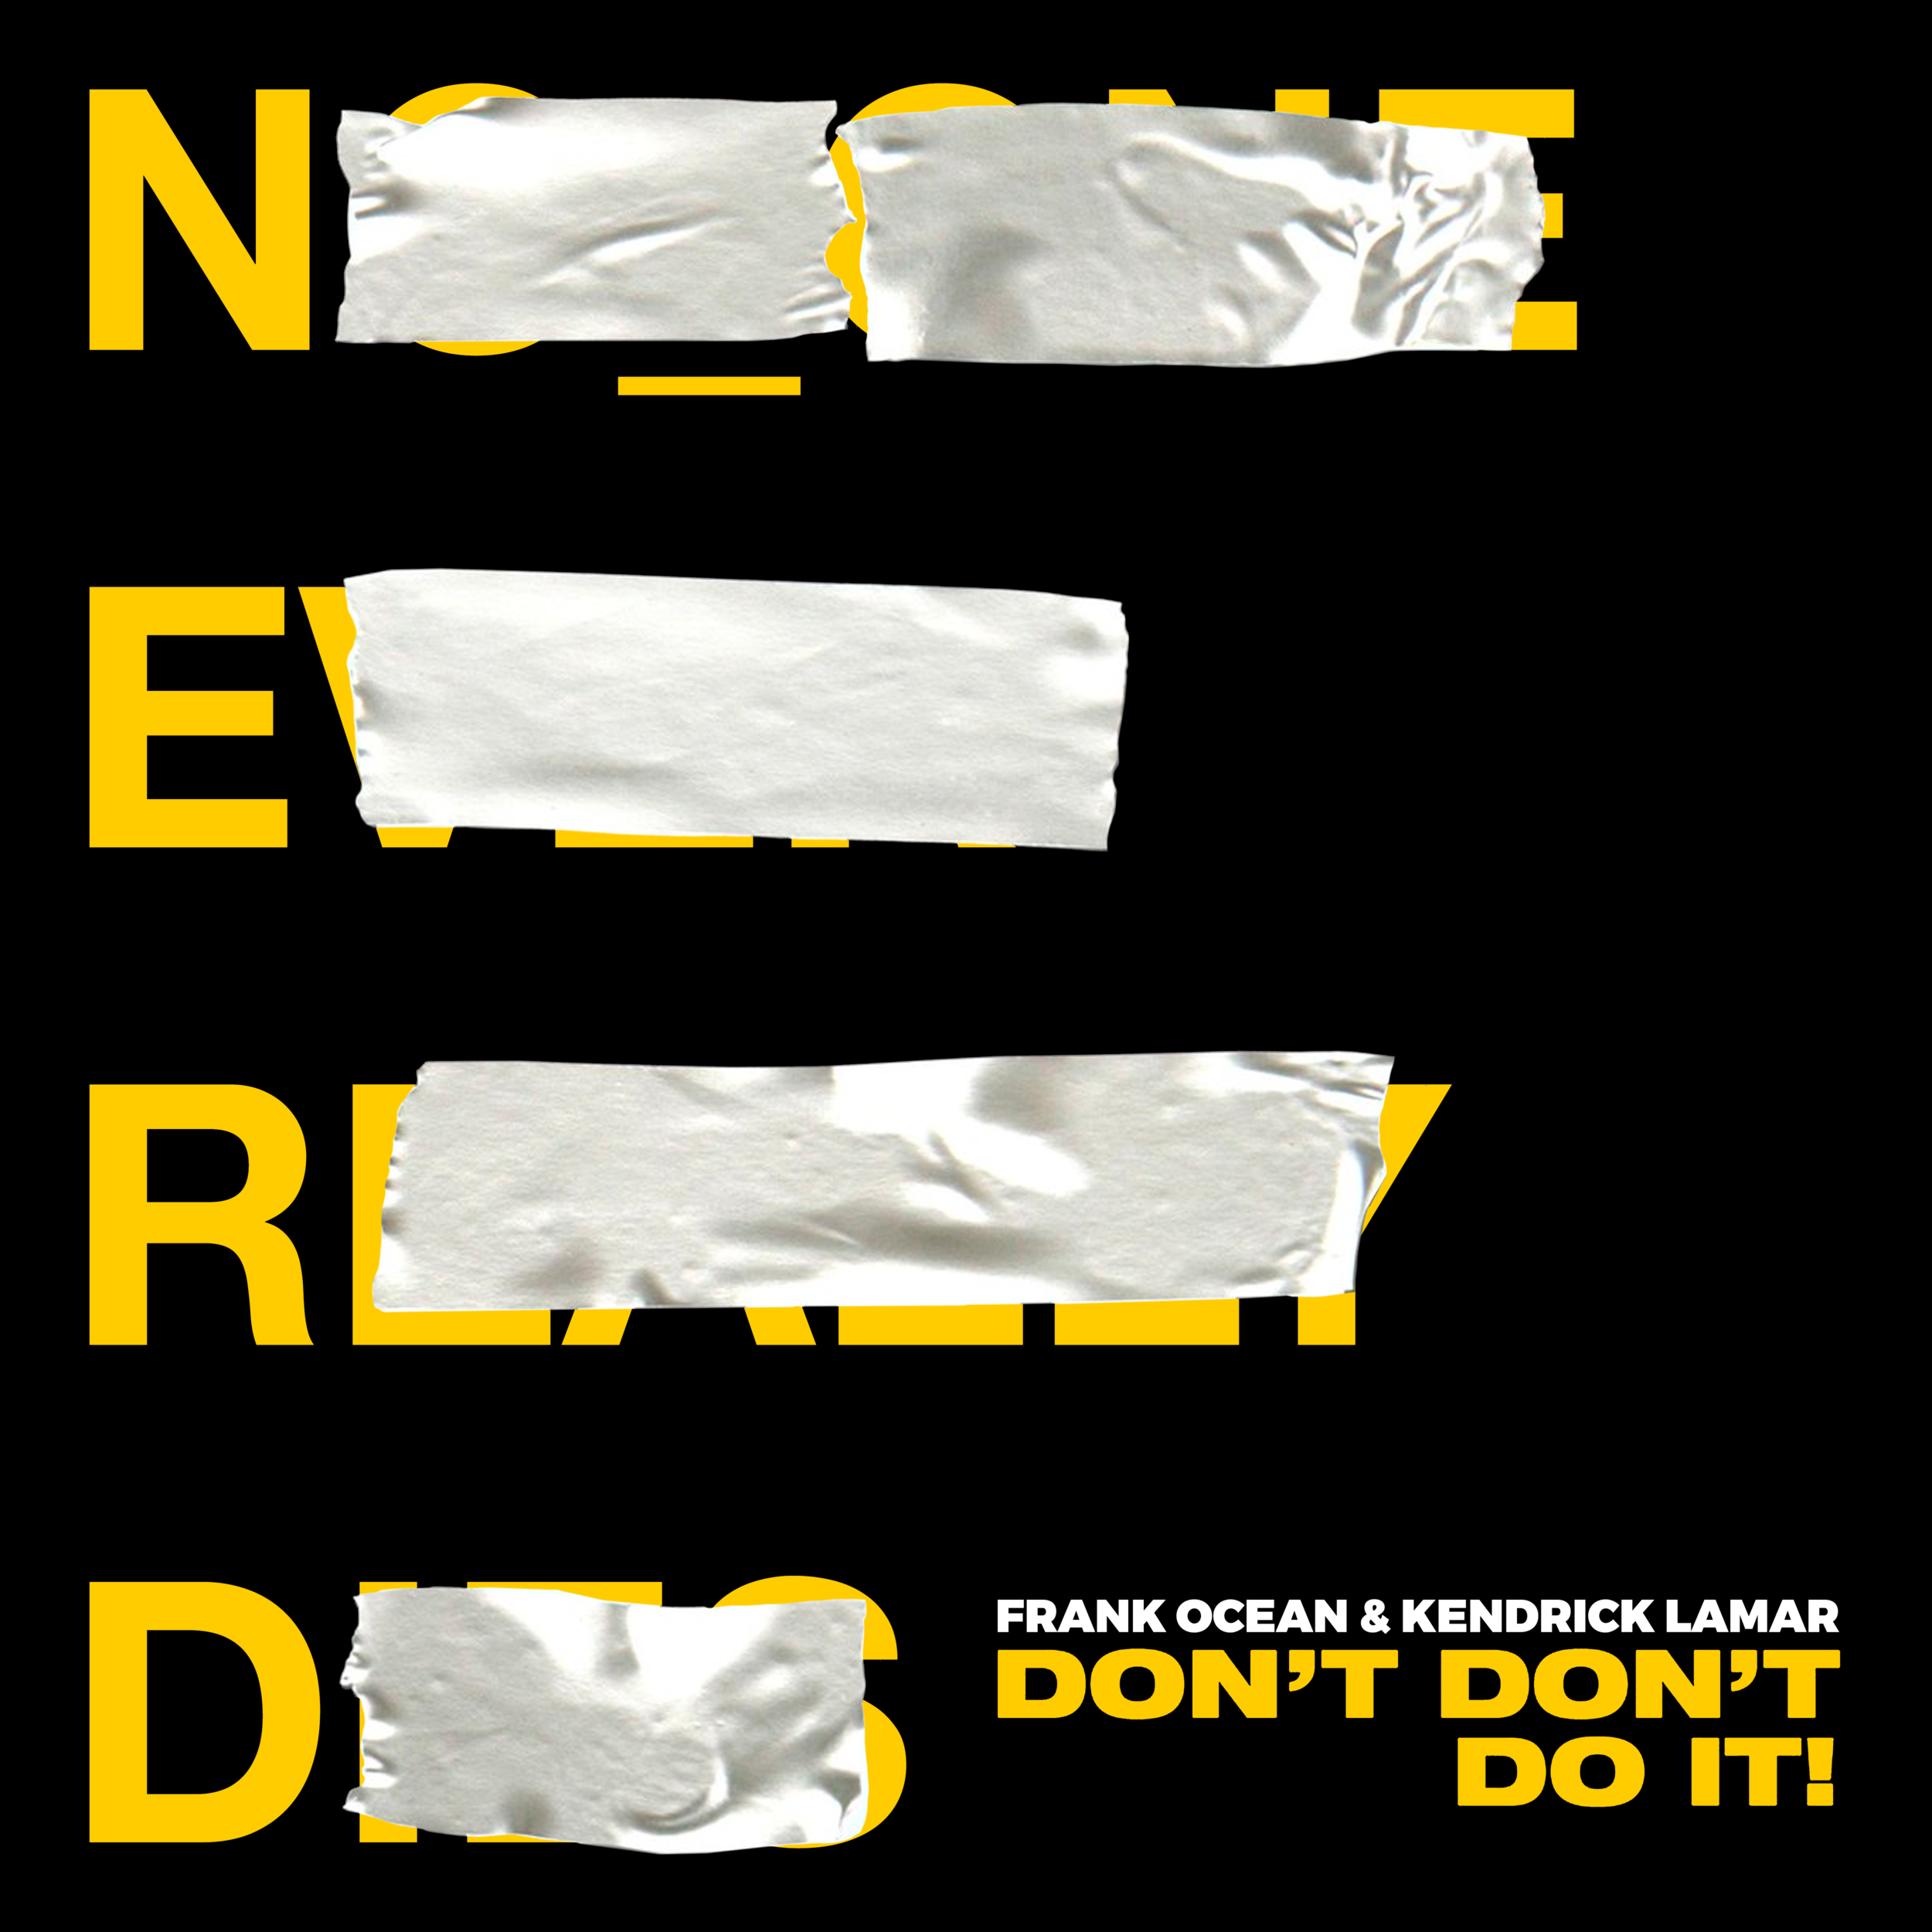 Don't Don't Do It Frank Ocean NERD Album Art.jpg